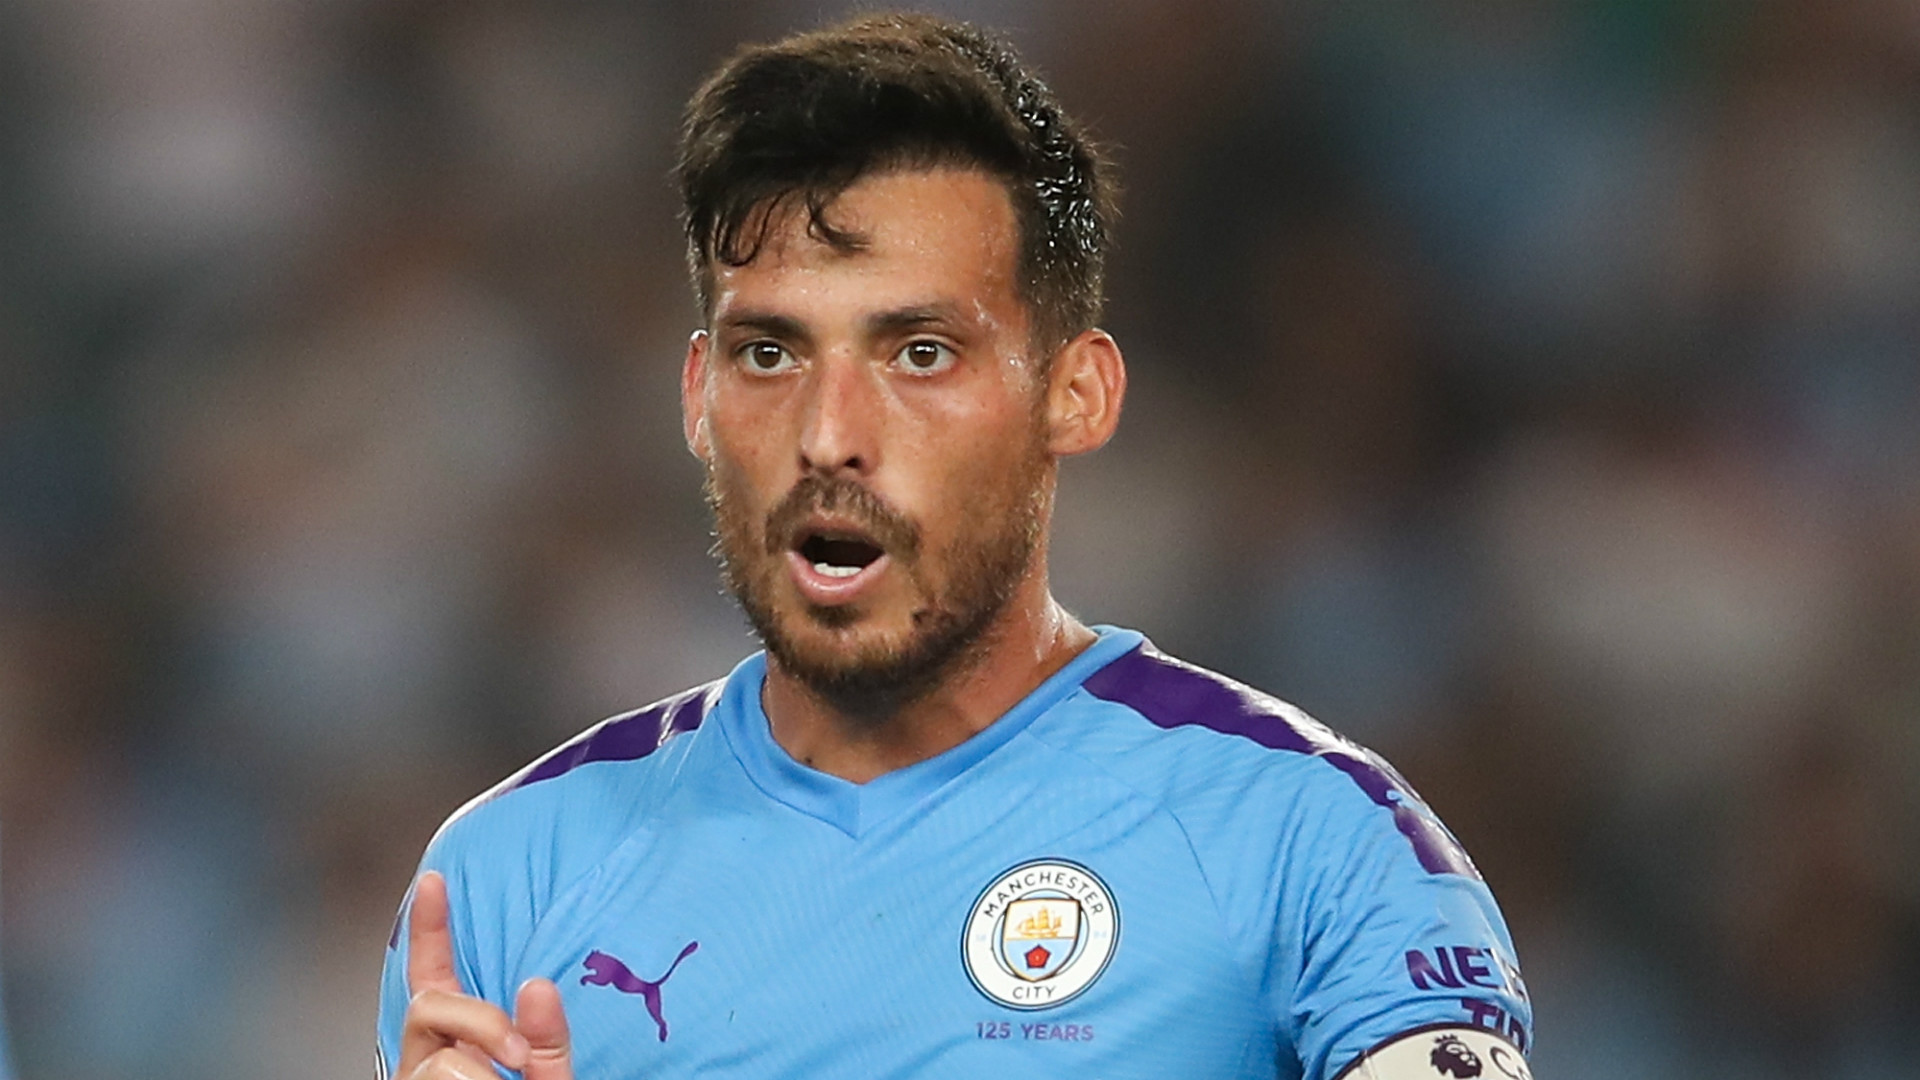 'David Silva loves Serie A & could play until he's 40' – Man City star's father responds to Lazio links